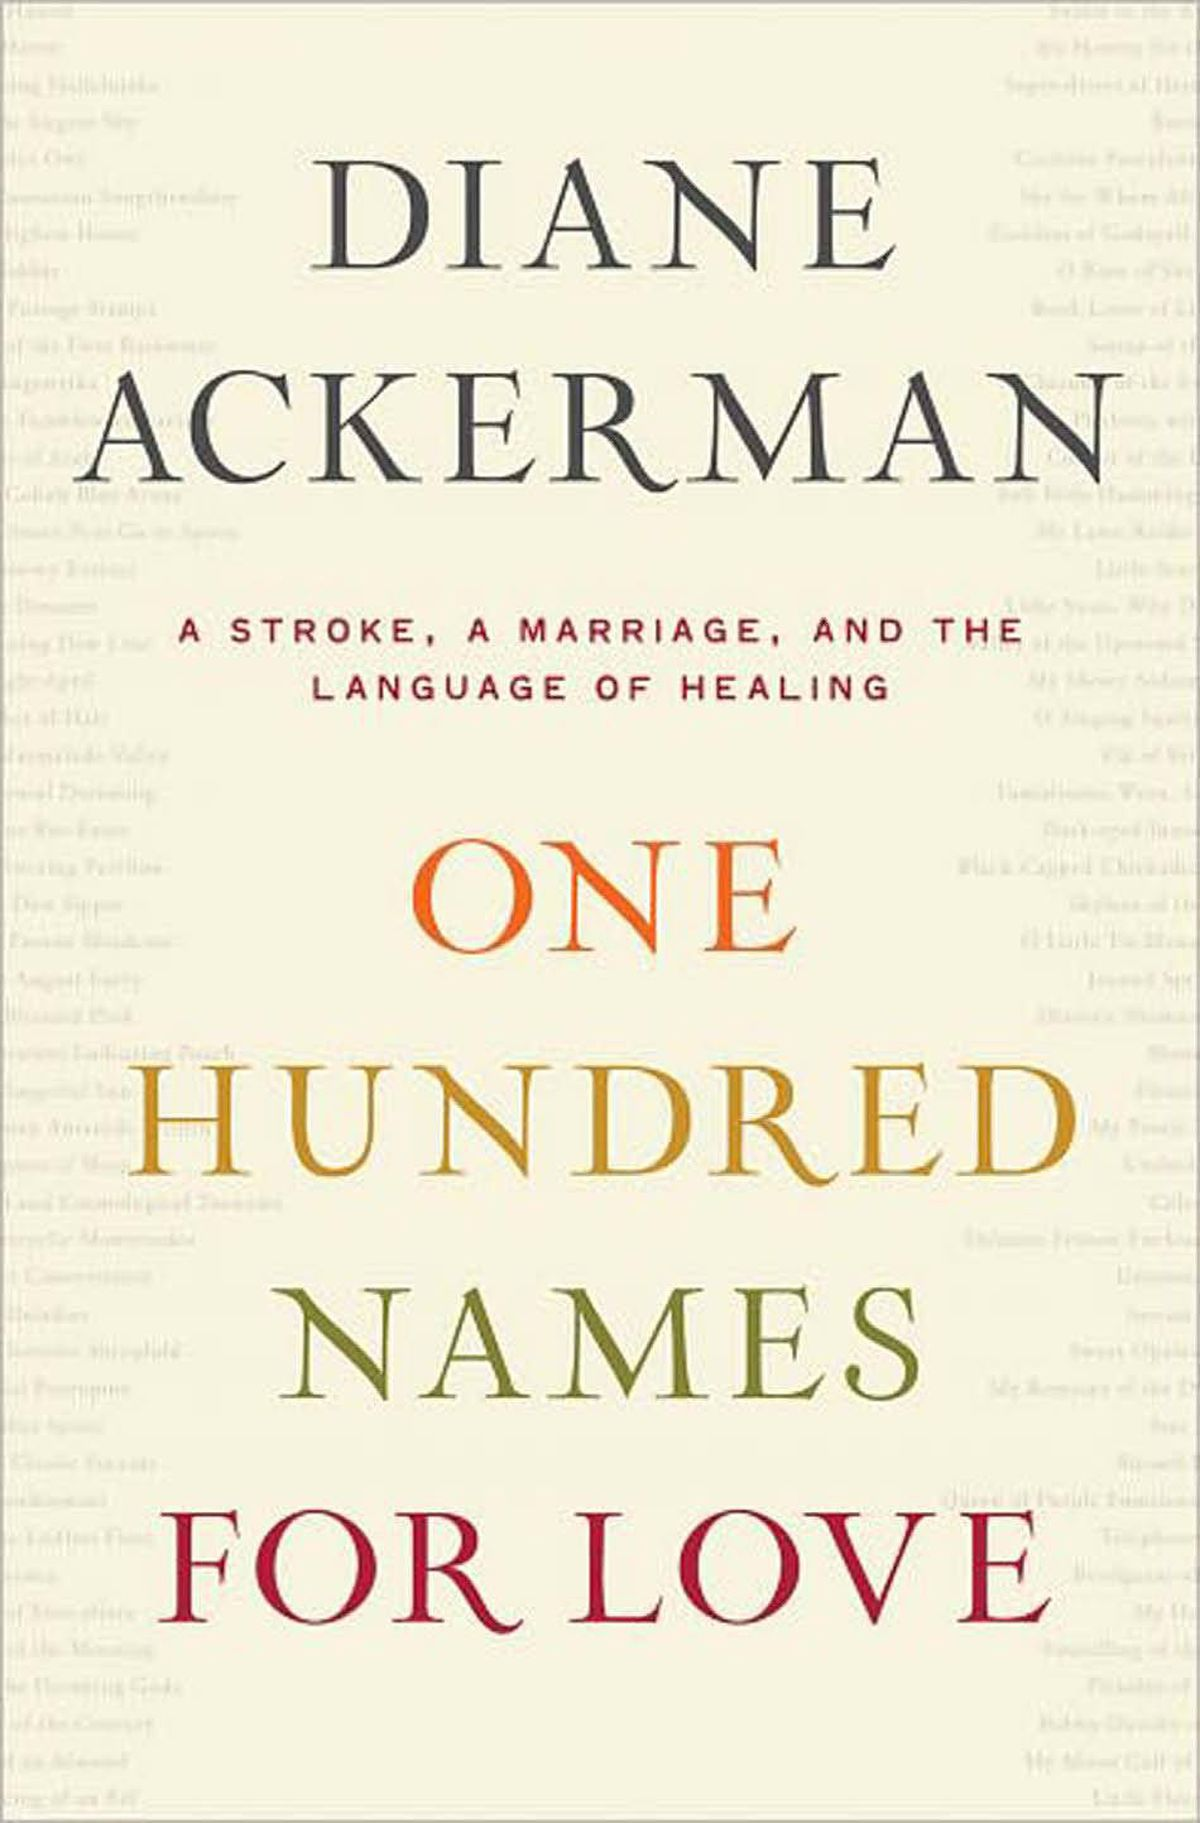 ONE HUNDRED NAMES FOR LOVE A Stroke, a Marriage, and the Language of Healing By Diane Ackerman (Norton) This is a book about life-altering illness and language as balm and bond. Ackerman writes vividly and movingly about the effects of her husband's stroke on her and on her husband, writer Paul West. She writes well about married life, its intimacies and childish pleasures. Often, her writing is startling and evocative. – André Alexis